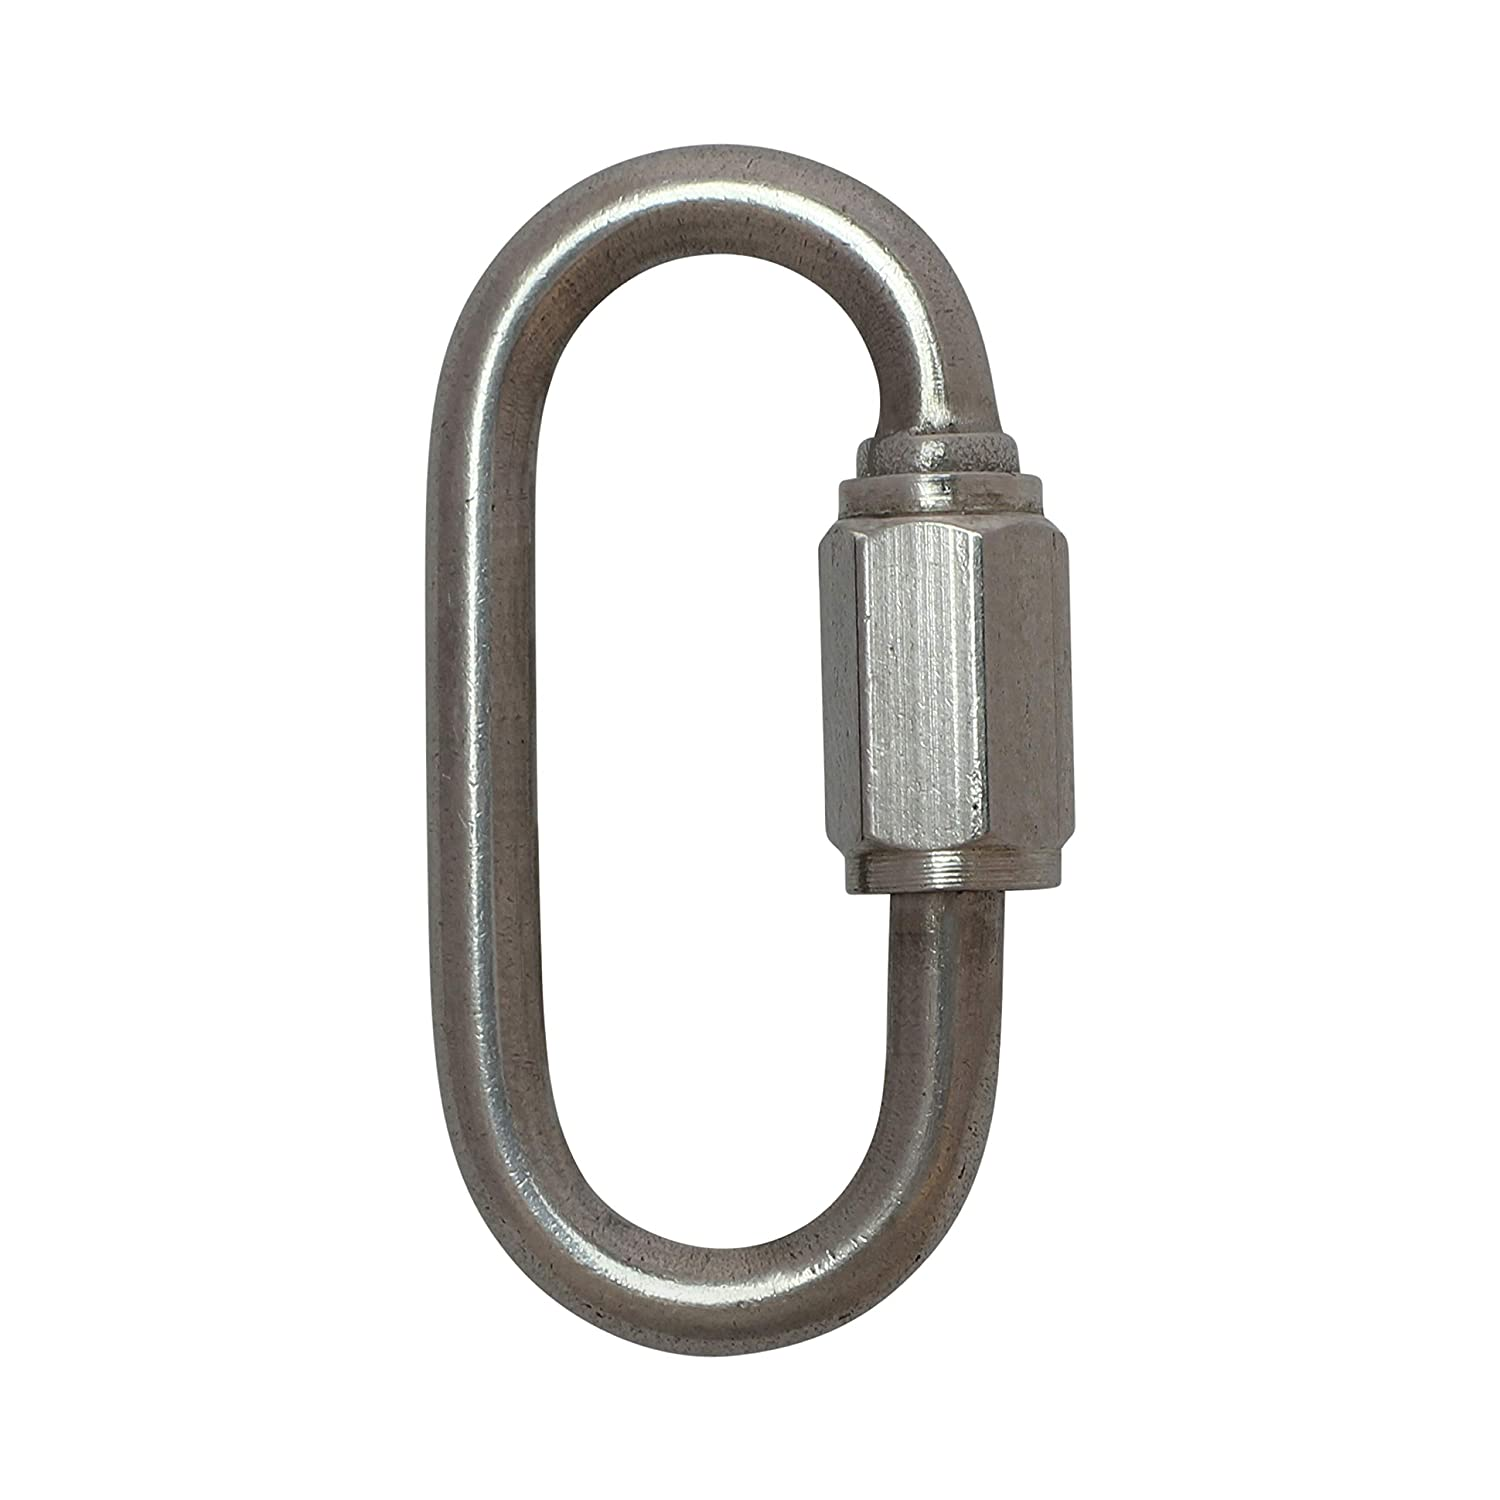 5 Pack RCH Hardware QL-SS03-35 Stainless Steel Quick Link 8 Gauge Black